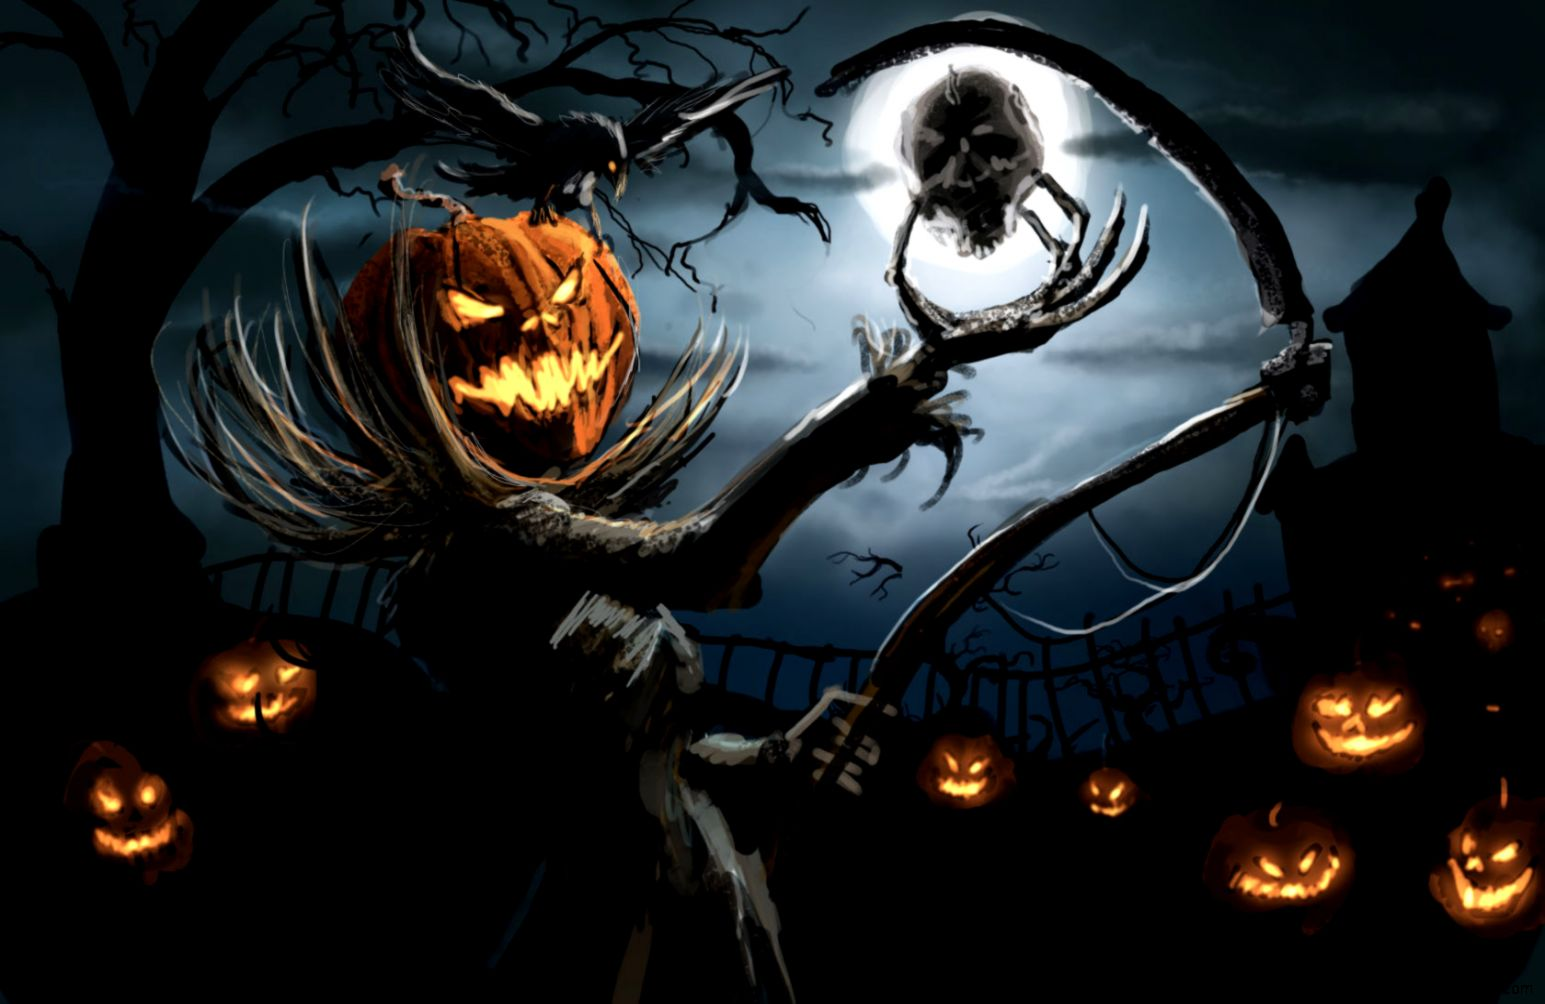 Must see   Wallpaper Horse Halloween - free-halloween-2013-backgrounds-amp-wallpapers  Pic_182071.jpg